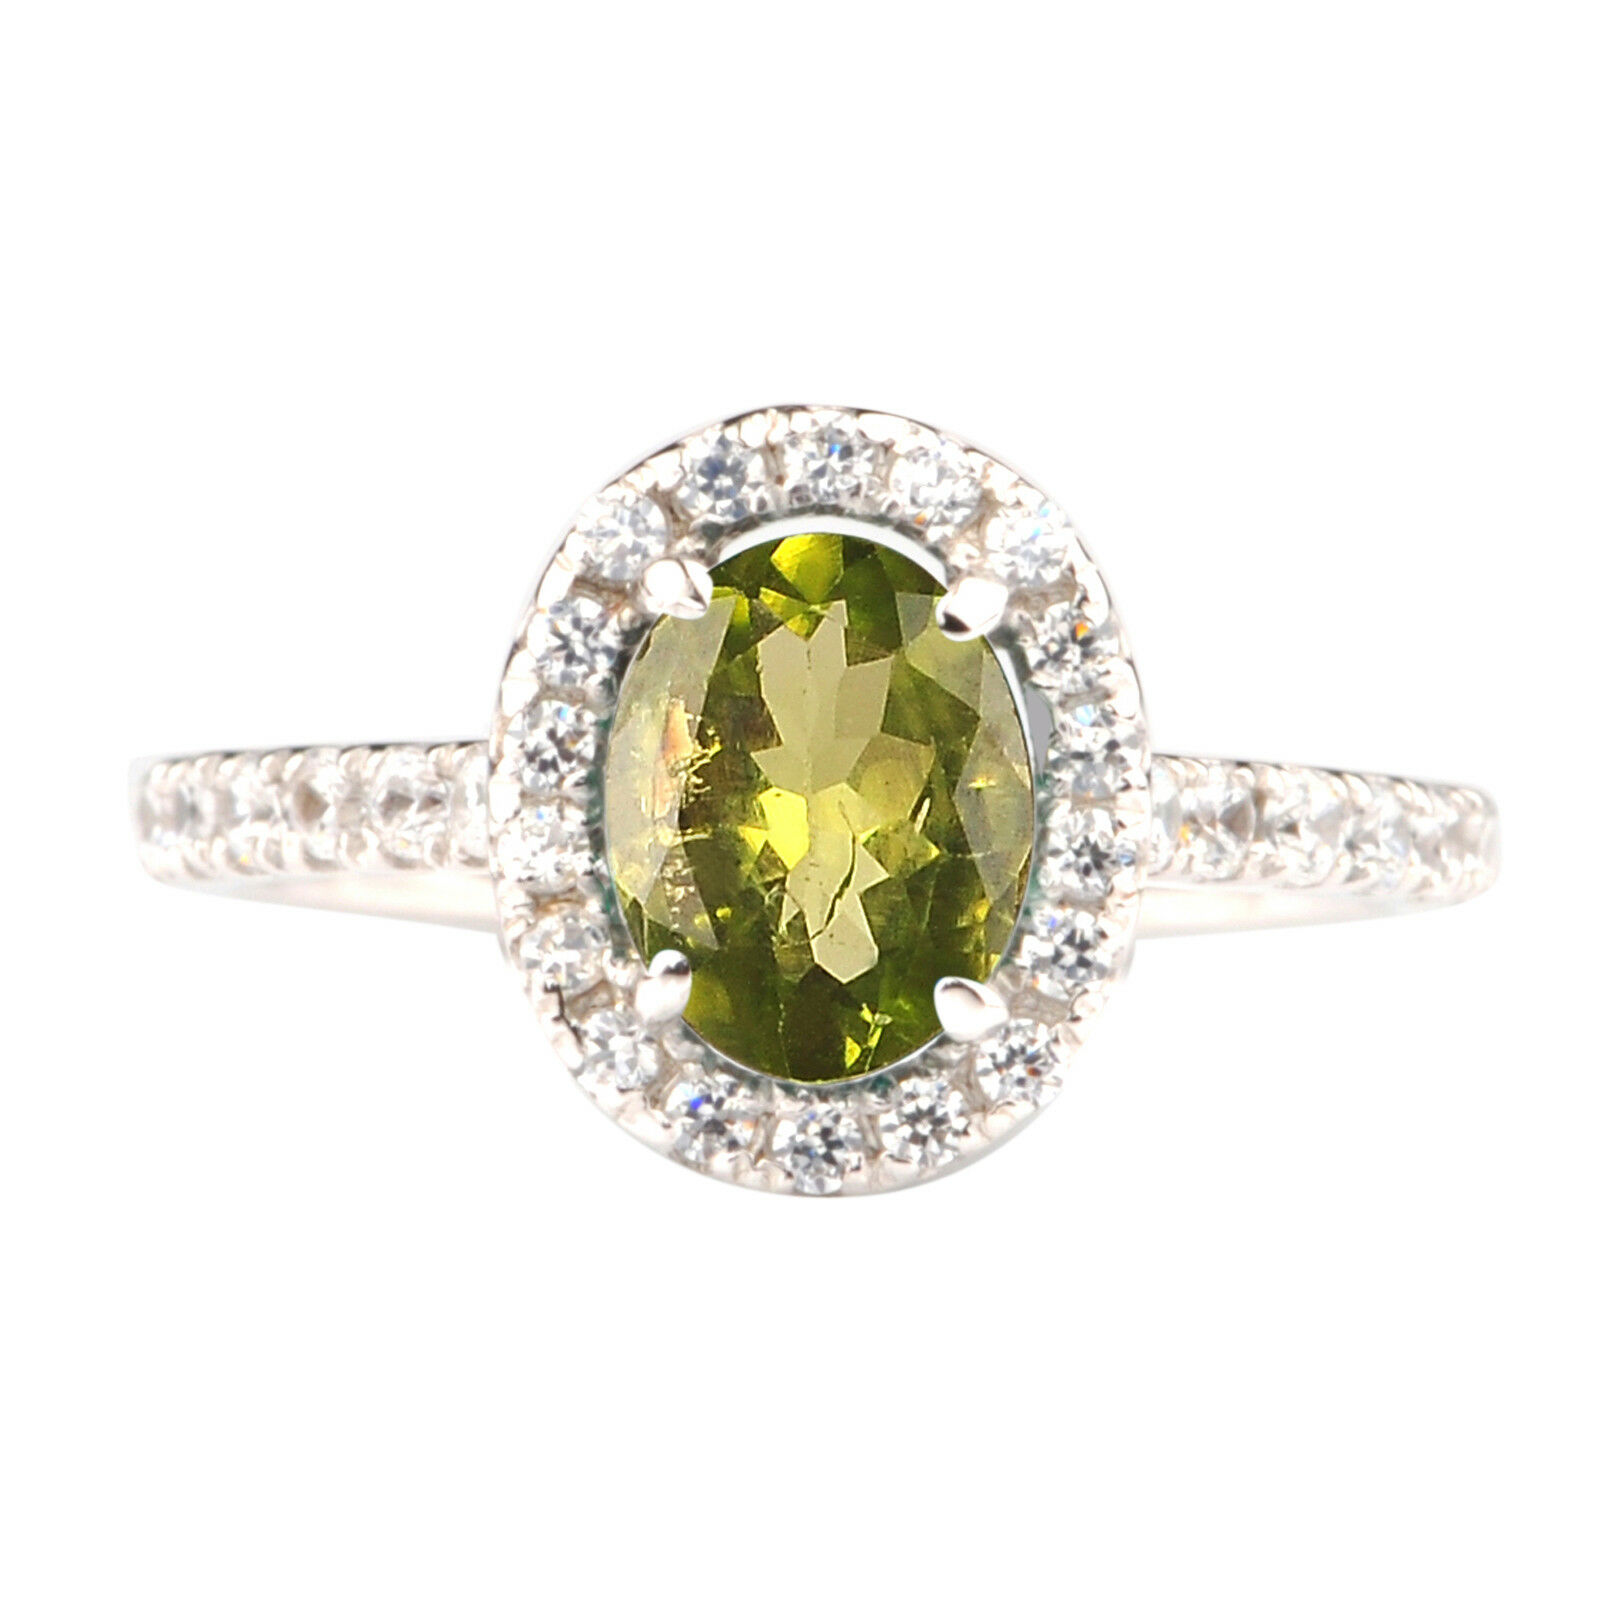 2.00Ct Natural Olive-Green Peridot EGL Certified Diamond Ring In 14KT White gold